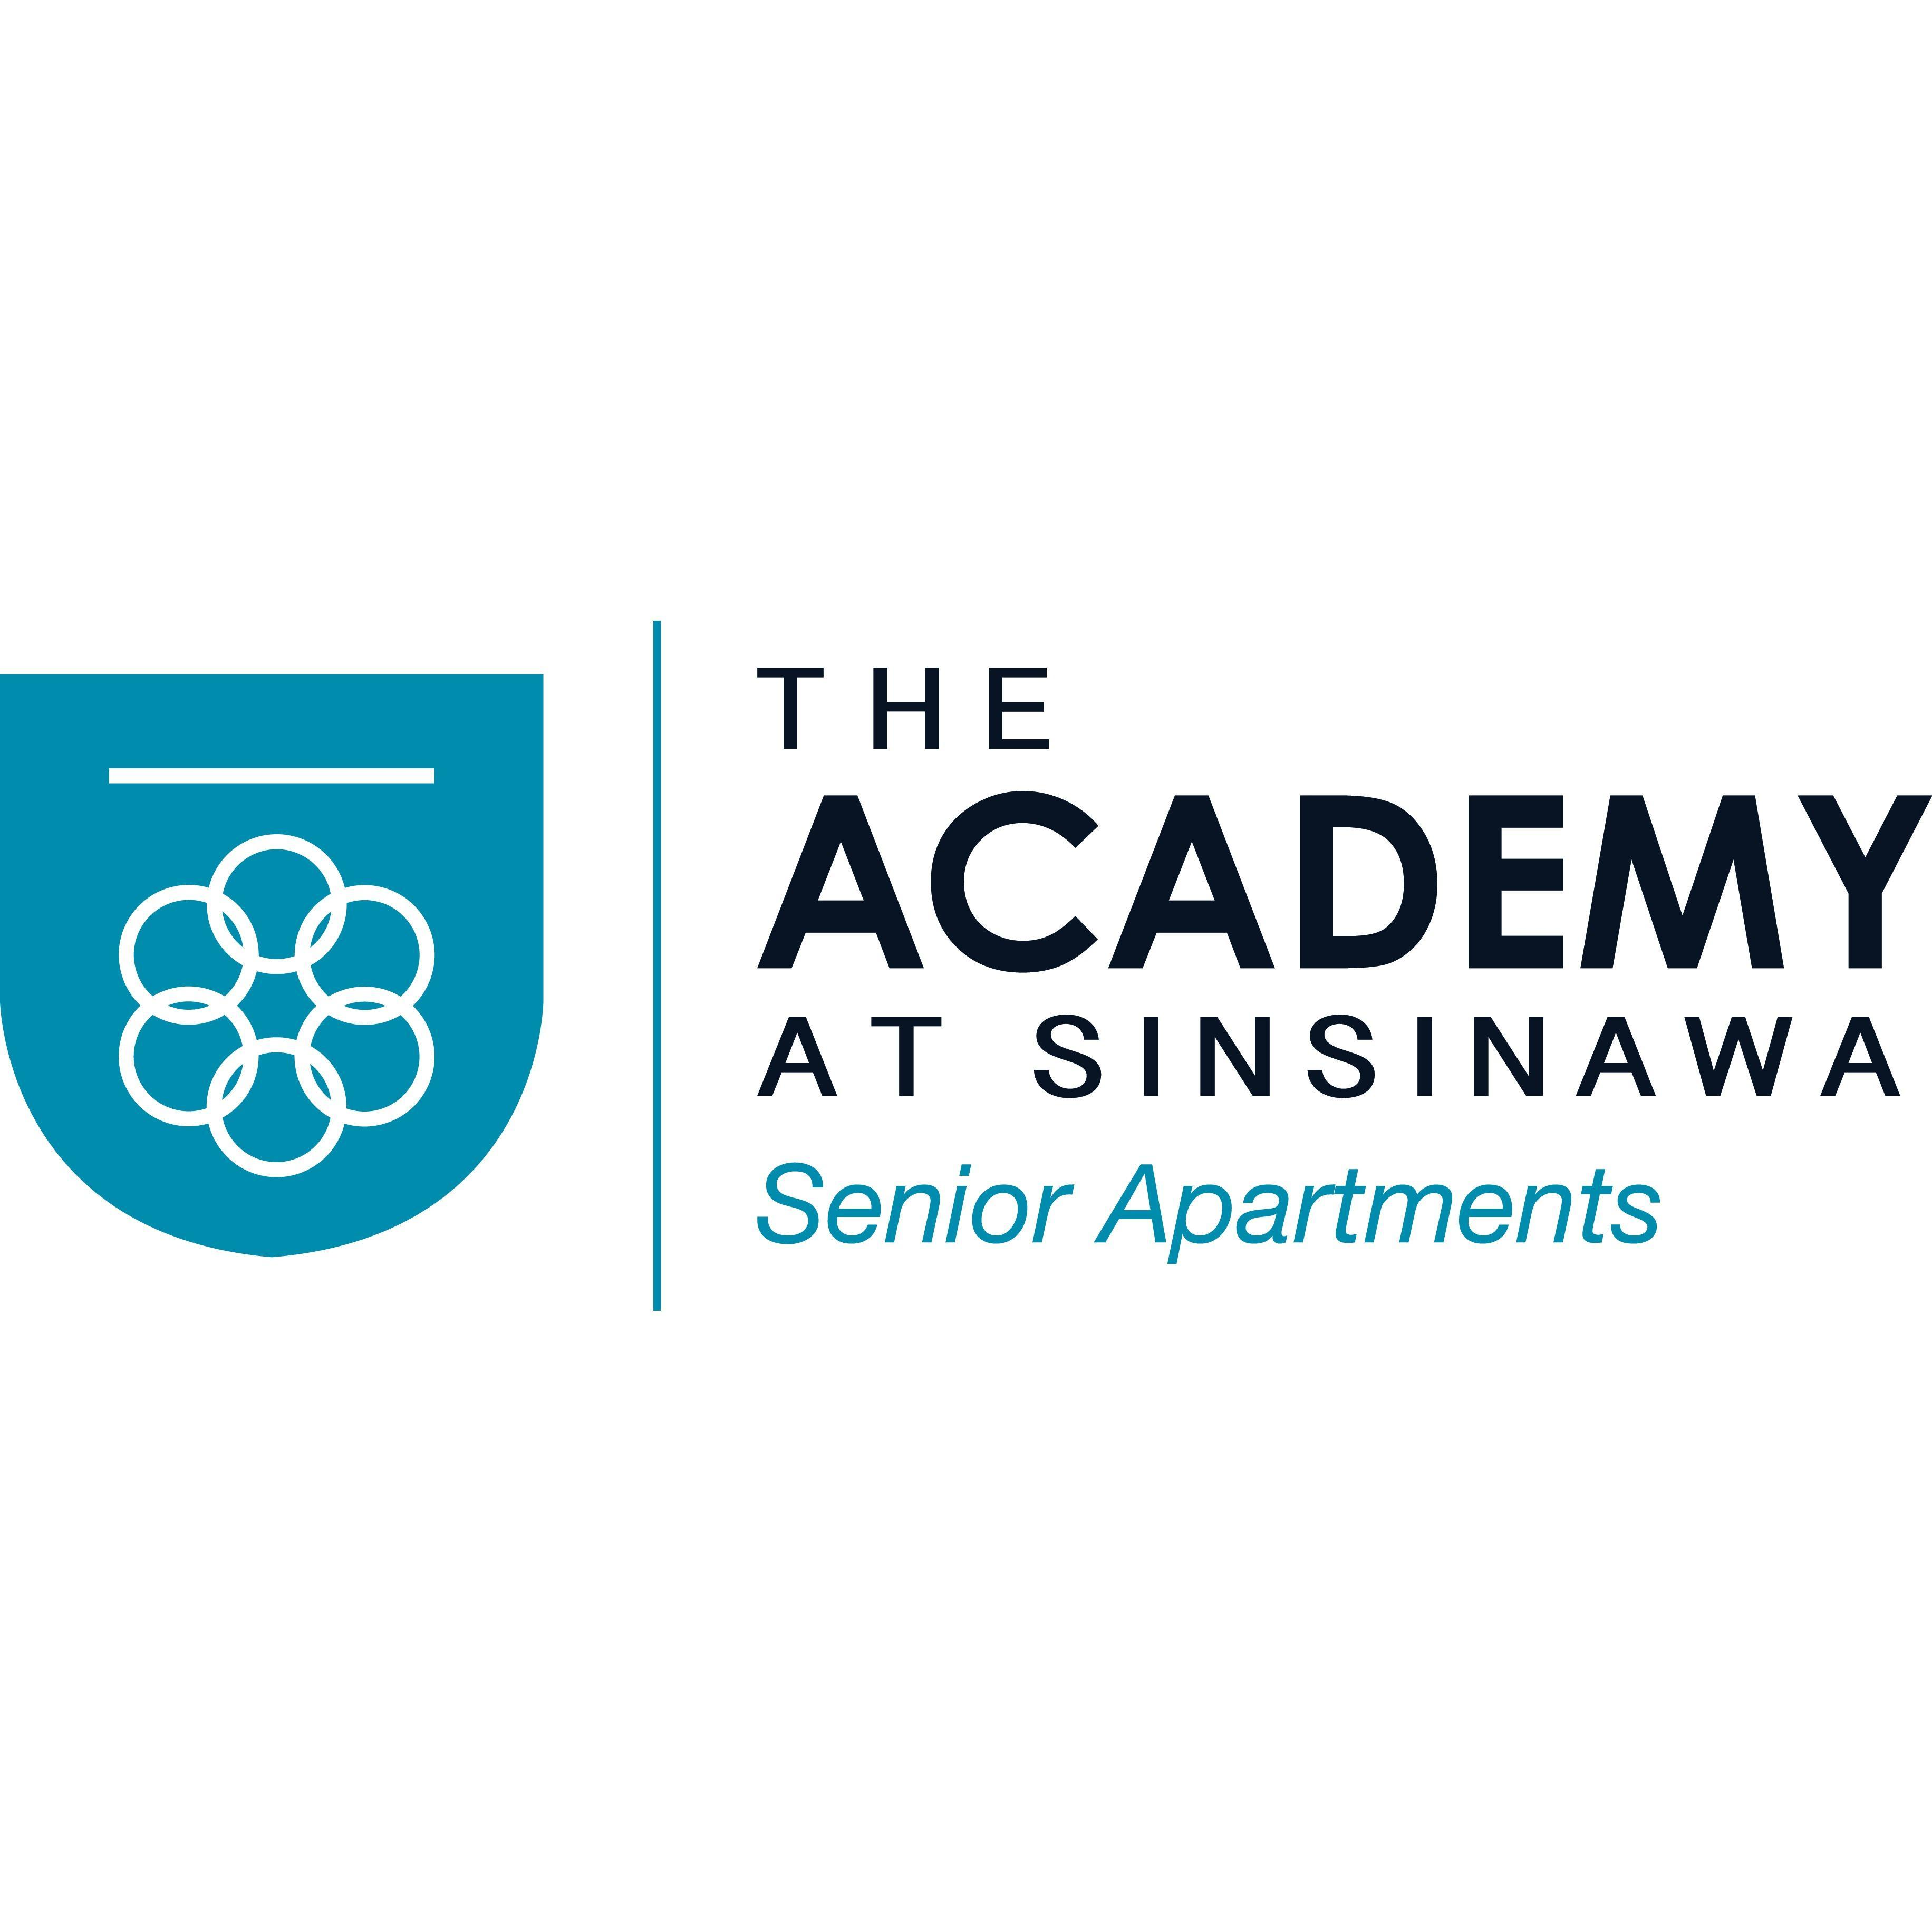 The Academy at Sinsinawa Senior Apartments